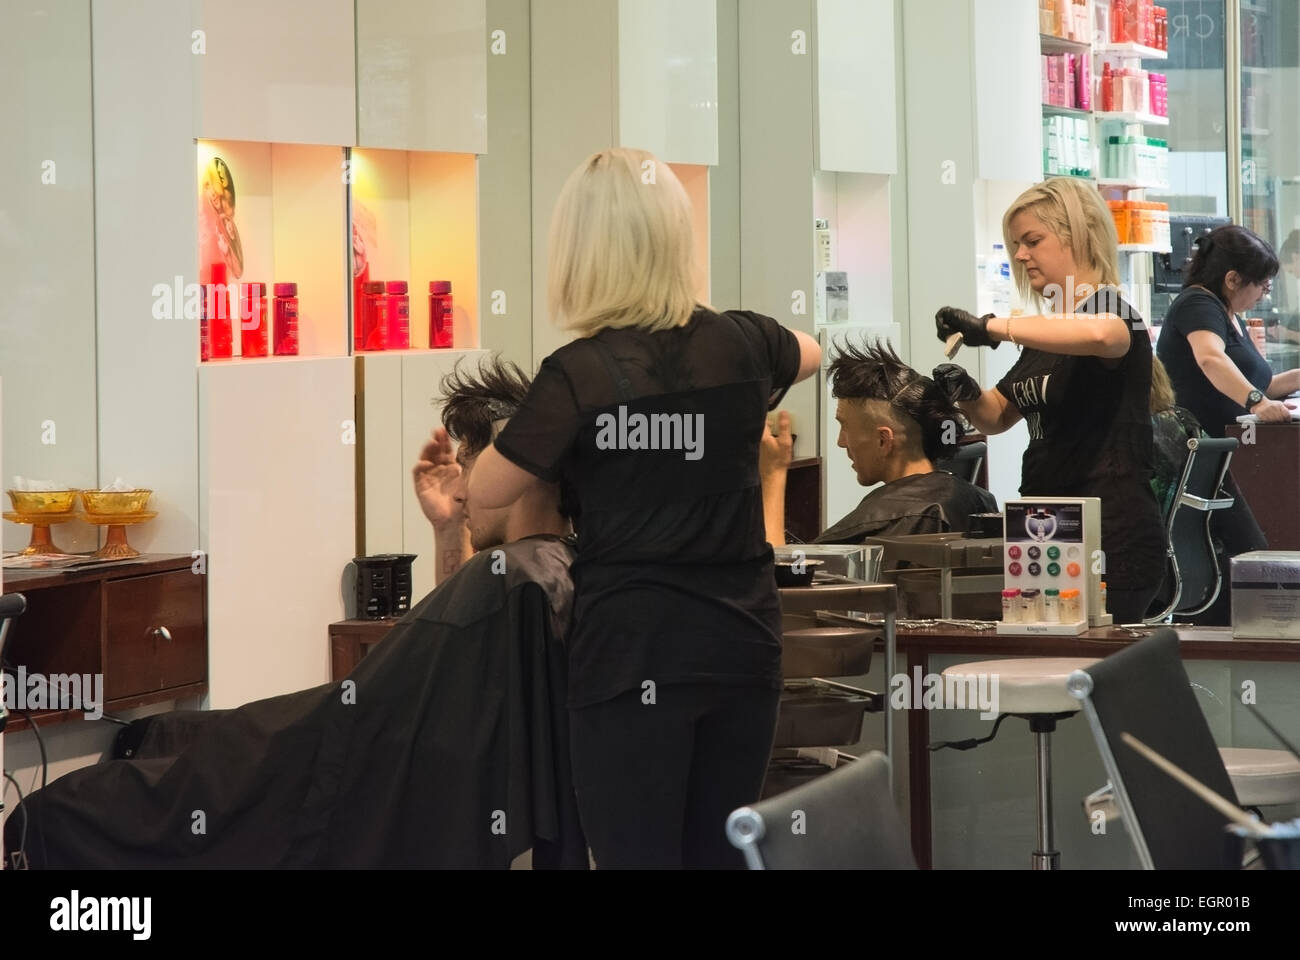 Hairdresser styling Man's hair - Stock Image